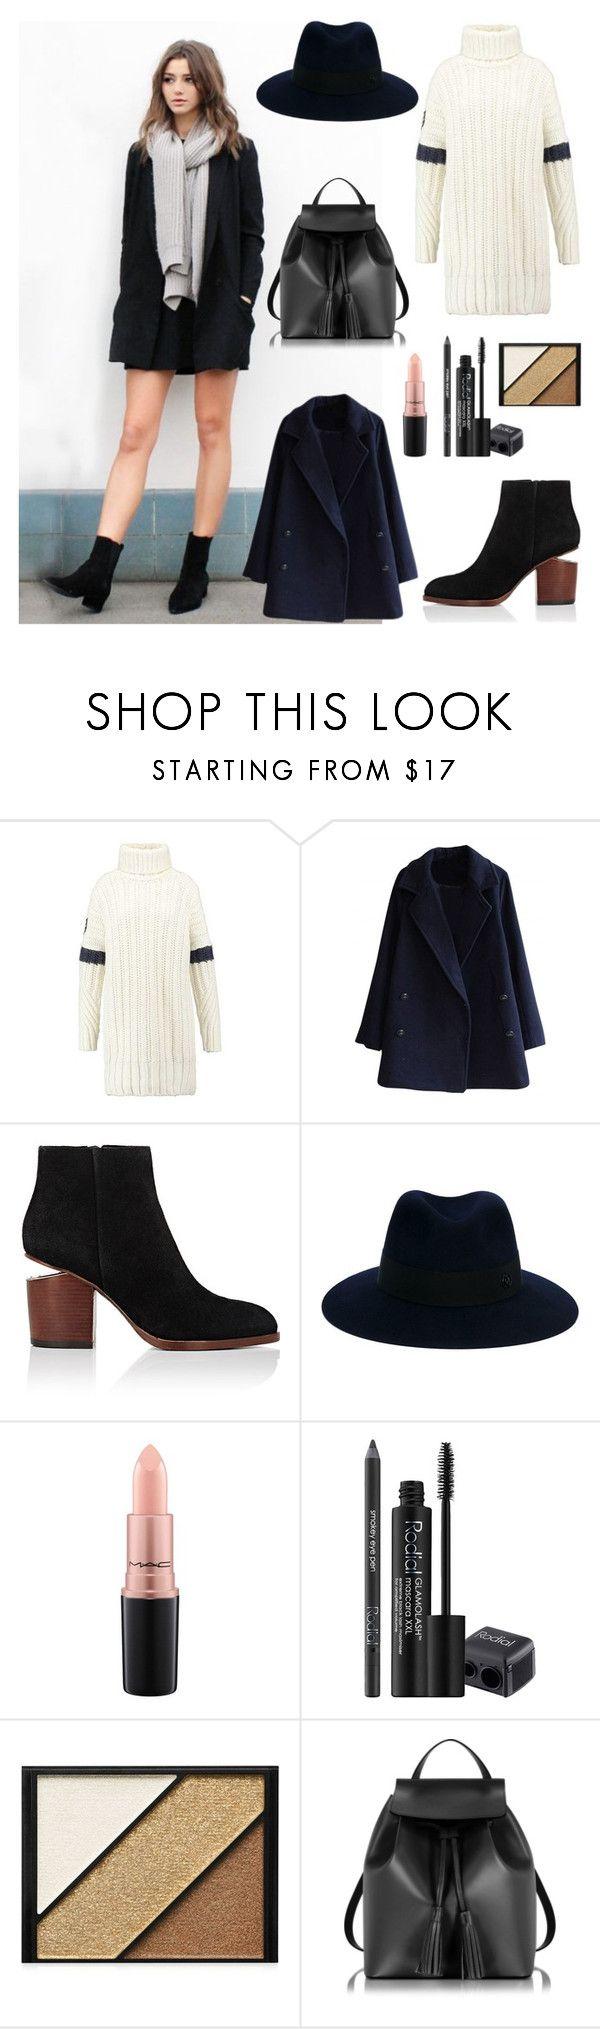 EL_C by stepehi on Polyvore featuring Alexander Wang, Le Parmentier, Maison Michel, Elizabeth Arden, Rodial, MAC Cosmetics and Calder